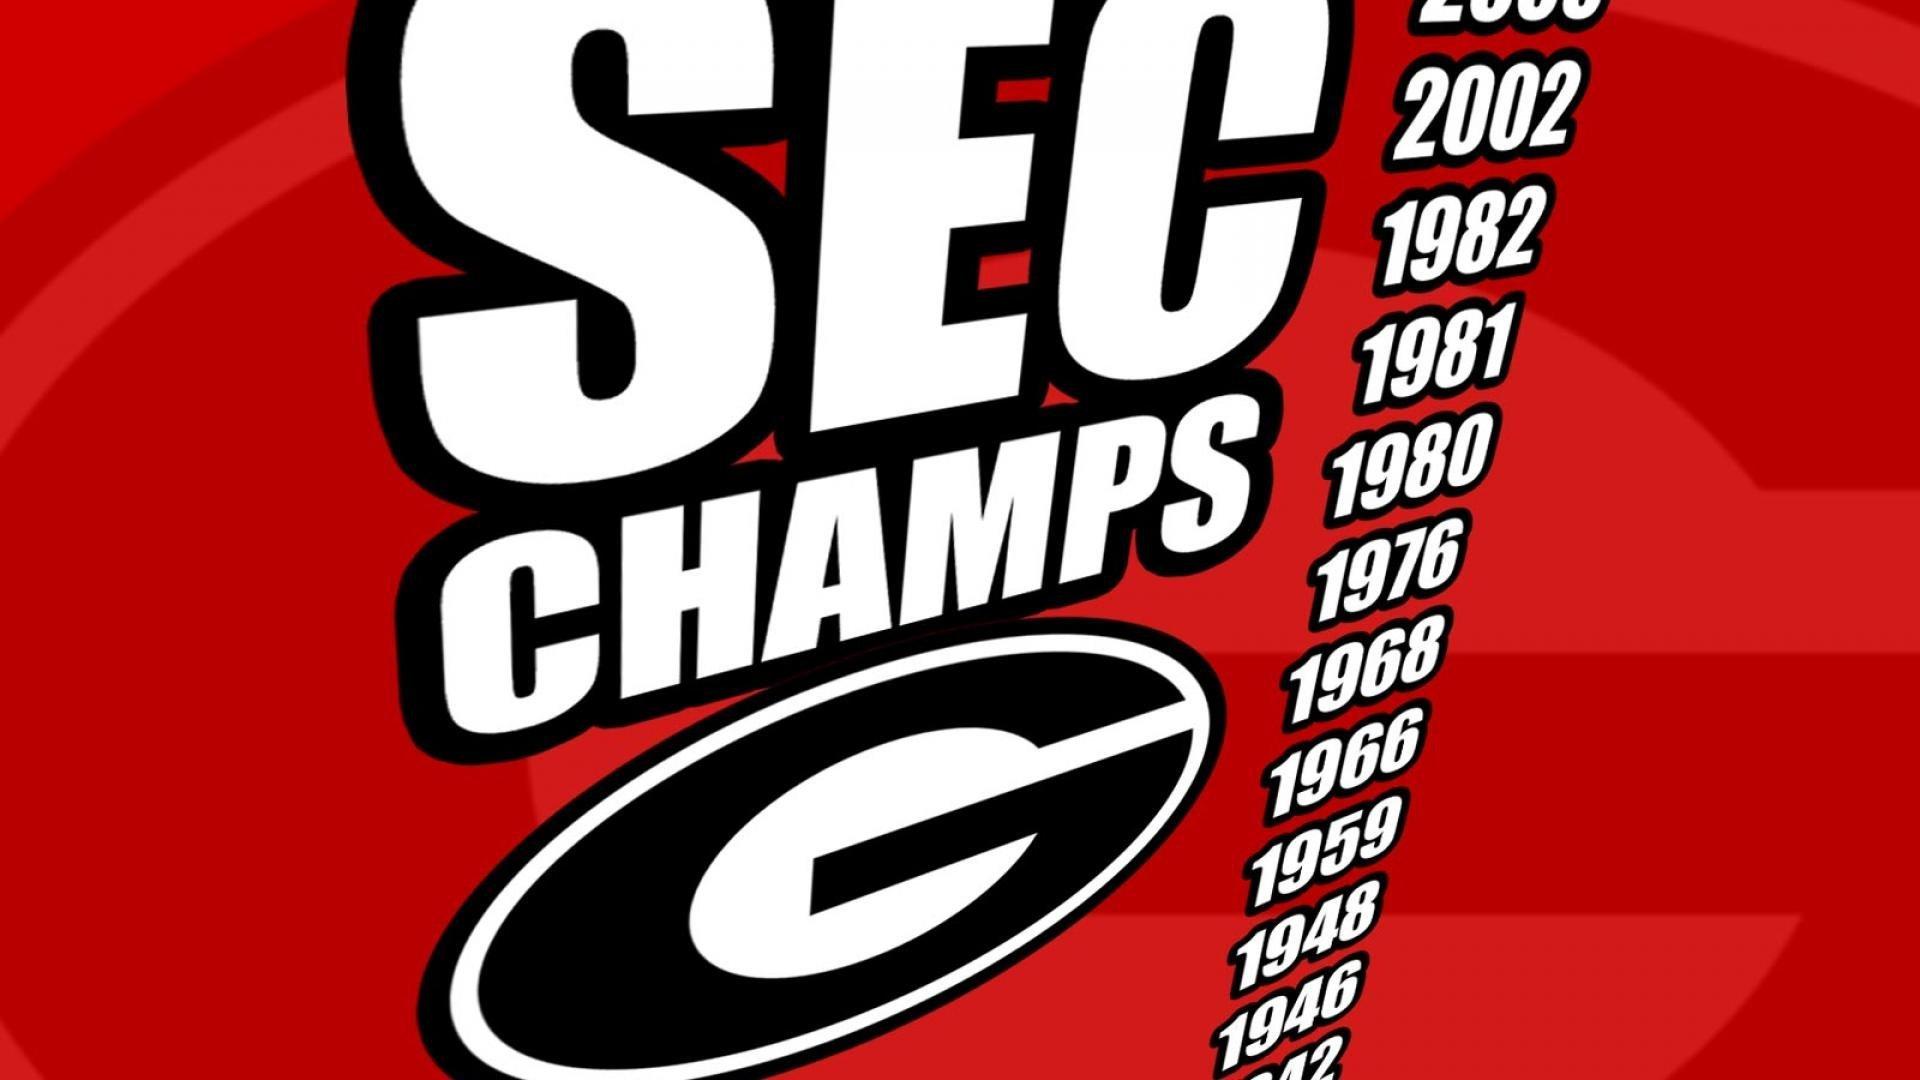 GEORGIA BULLDOGS college football wallpaper background 1920x1080